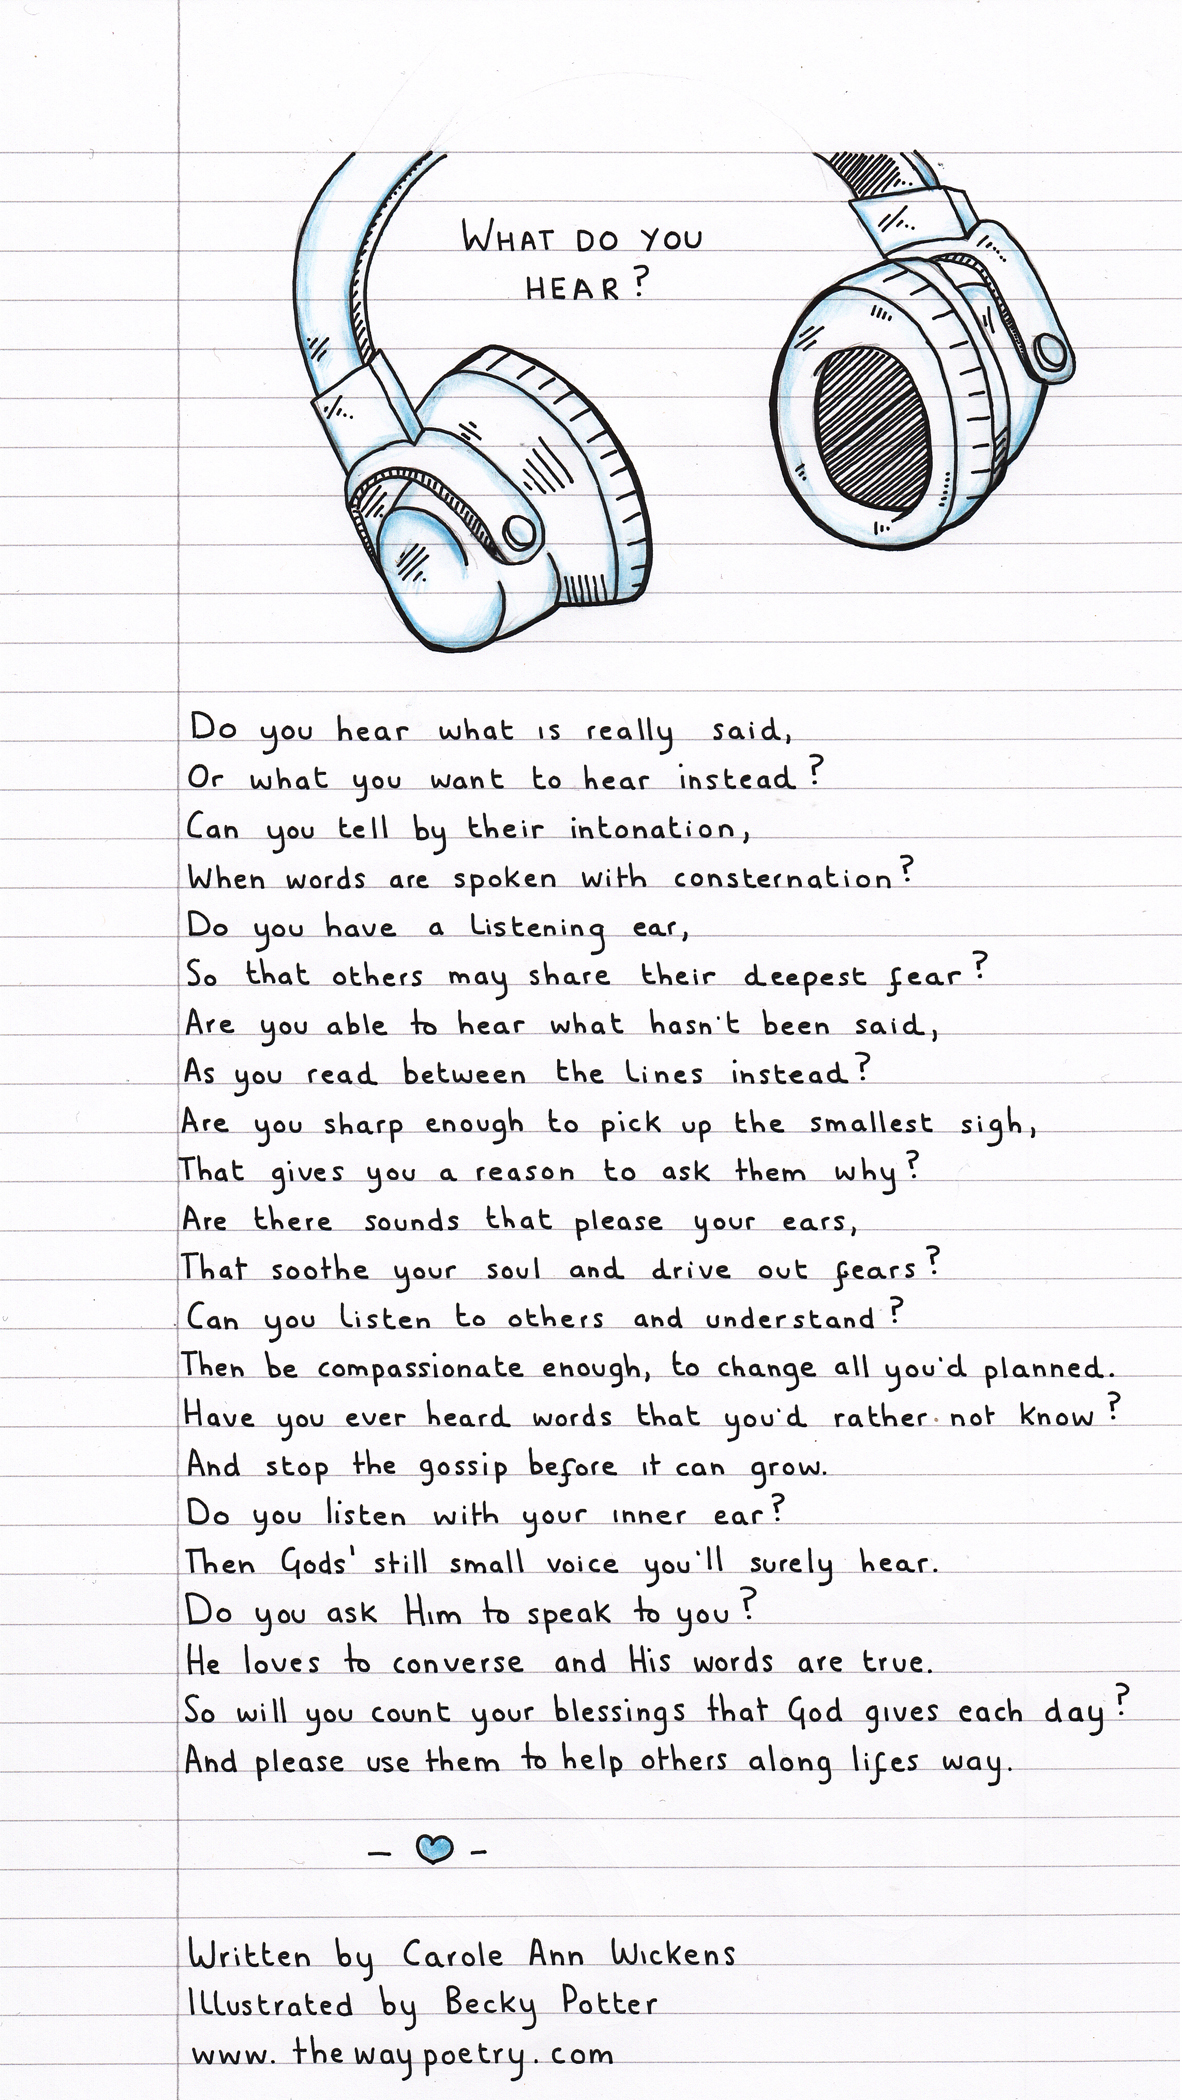 What Do You Hear? by Carole Ann Wickens